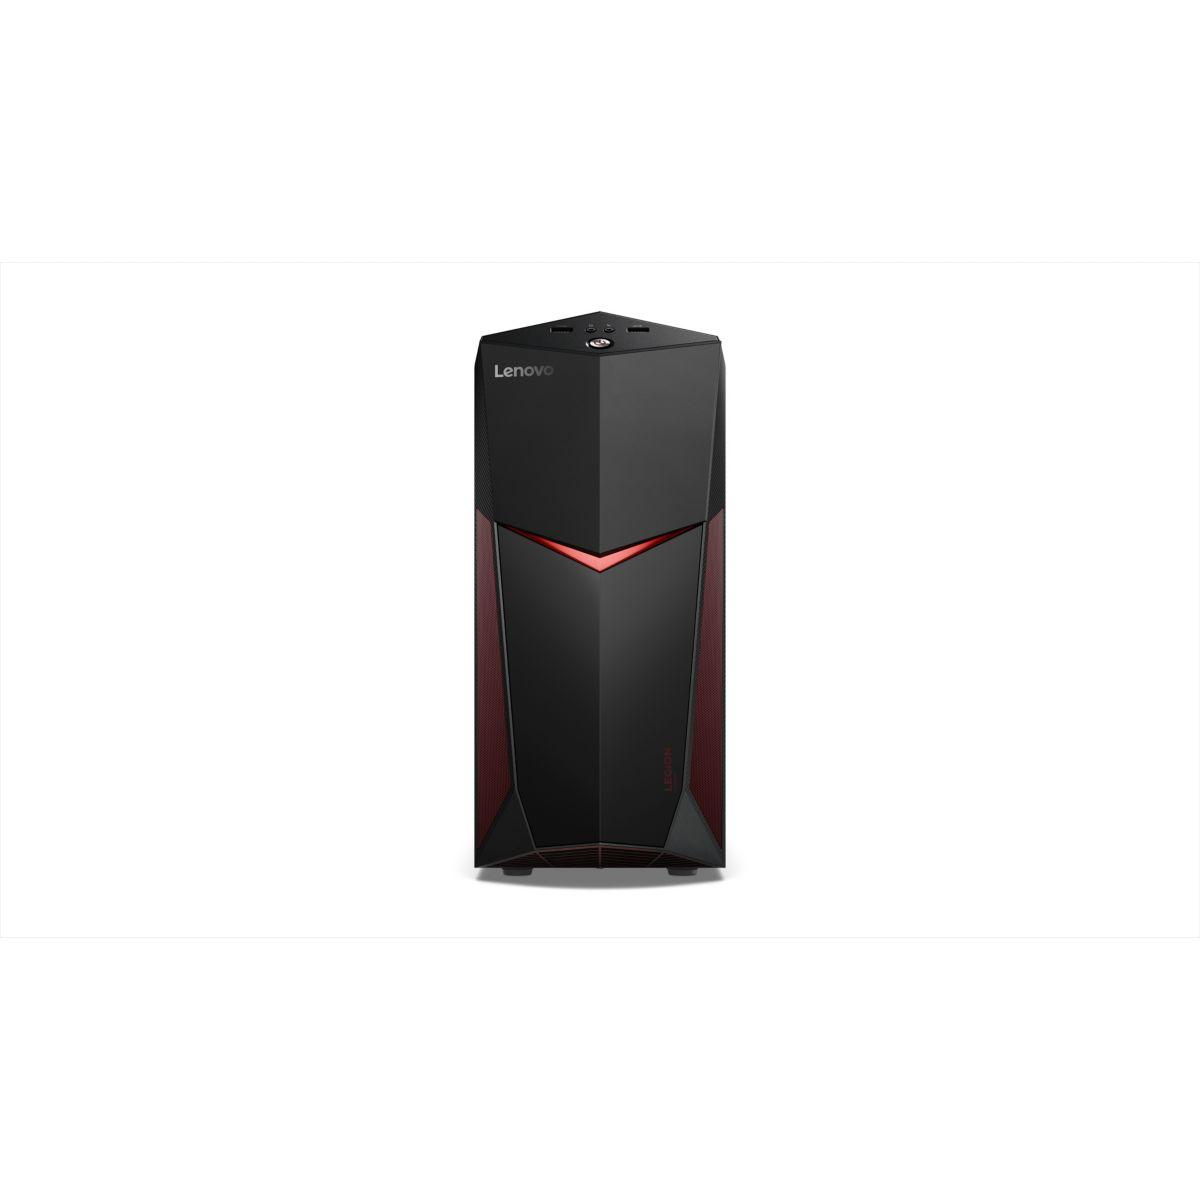 Pc gamer lenovo legion y520 tower-25icz es (photo)